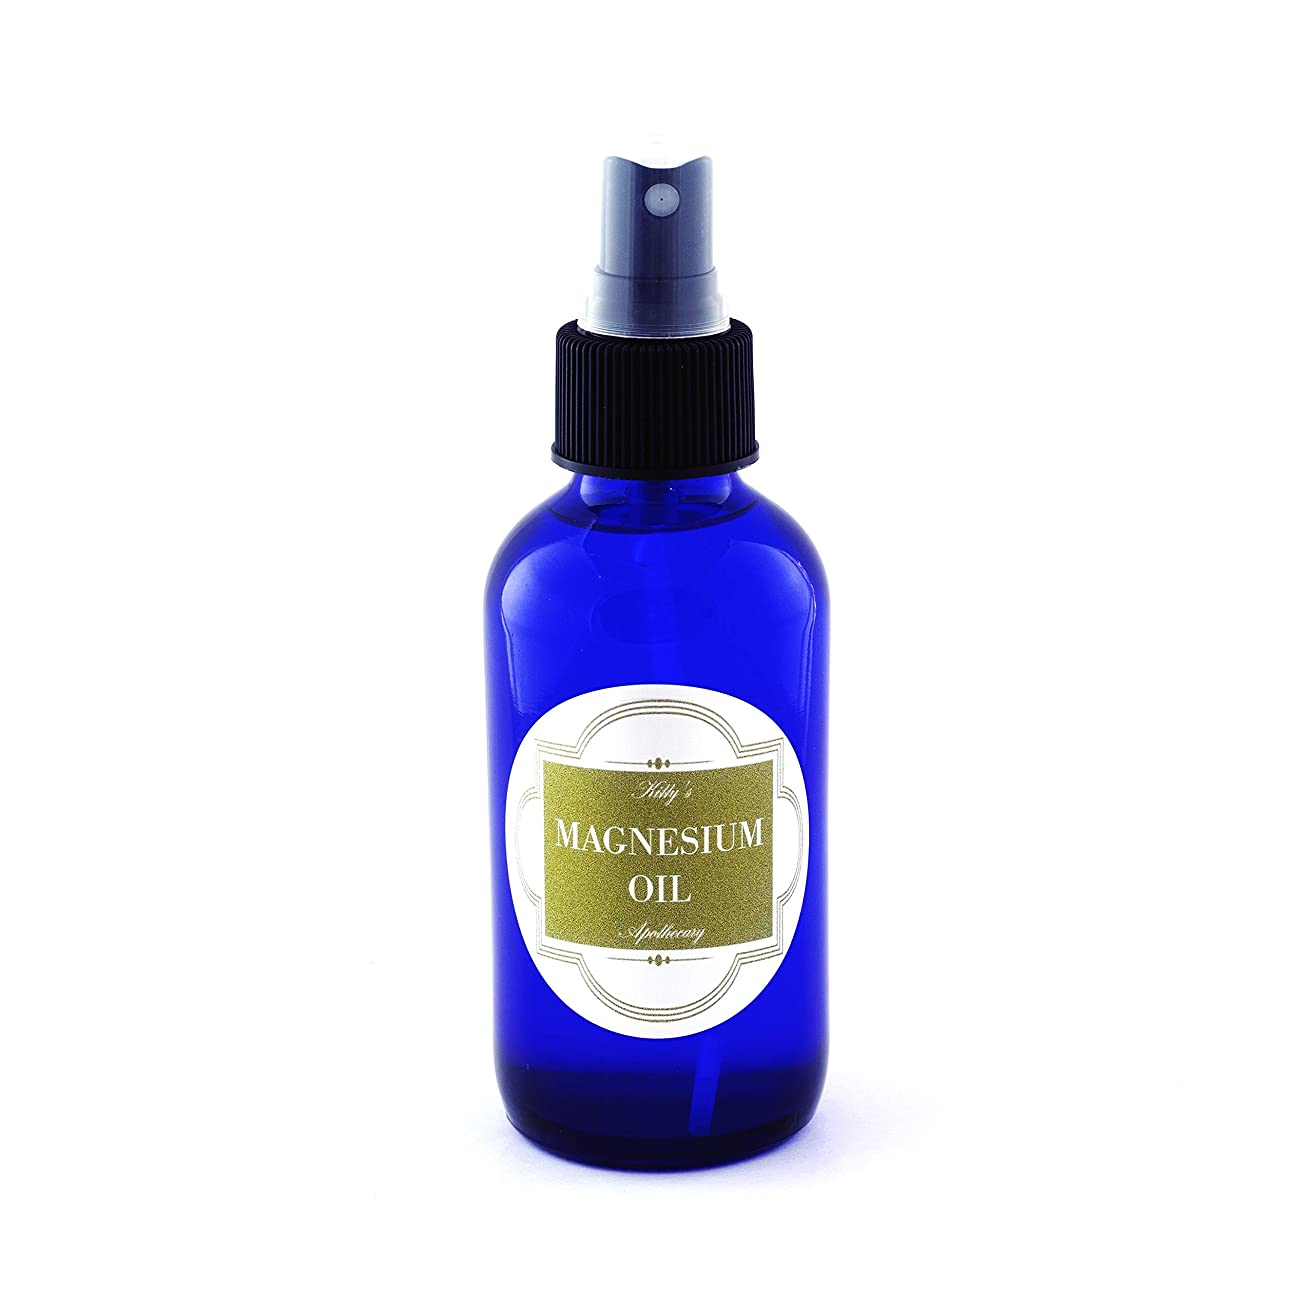 Vanilla Magnesium Oil Body Spray (4 FL Oz | 118 ML) Aromatherapy Body Spray, Natural Deodorant Spray, Stop Muscle Cramps, Soothe Sore Muscles, Floral Body Spray with Magnesium Chloride